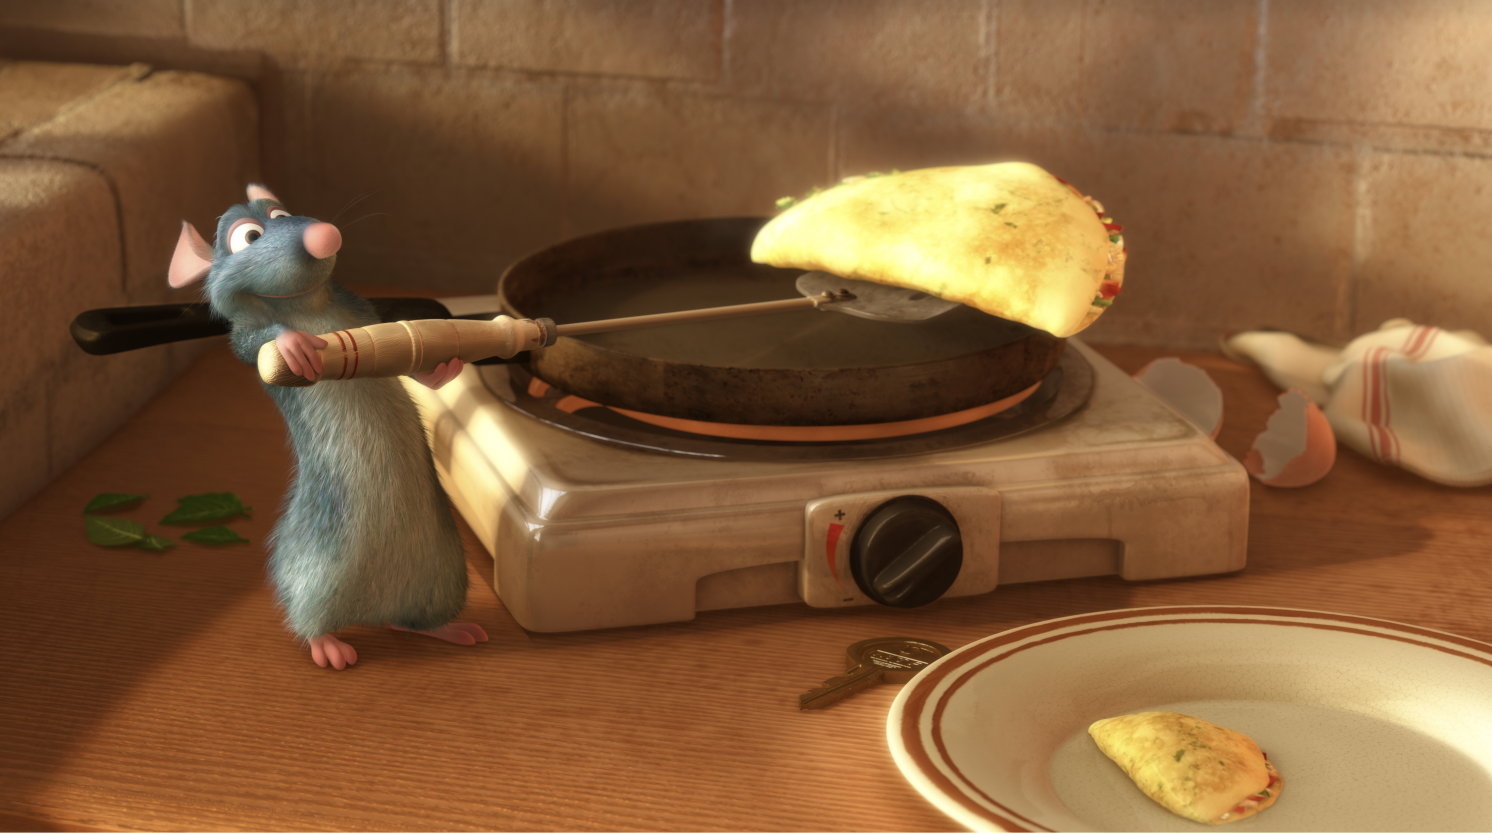 A still from the Movie Ratatouille depicting a cartoon rat holding a spatula with a piece of cheese on it.